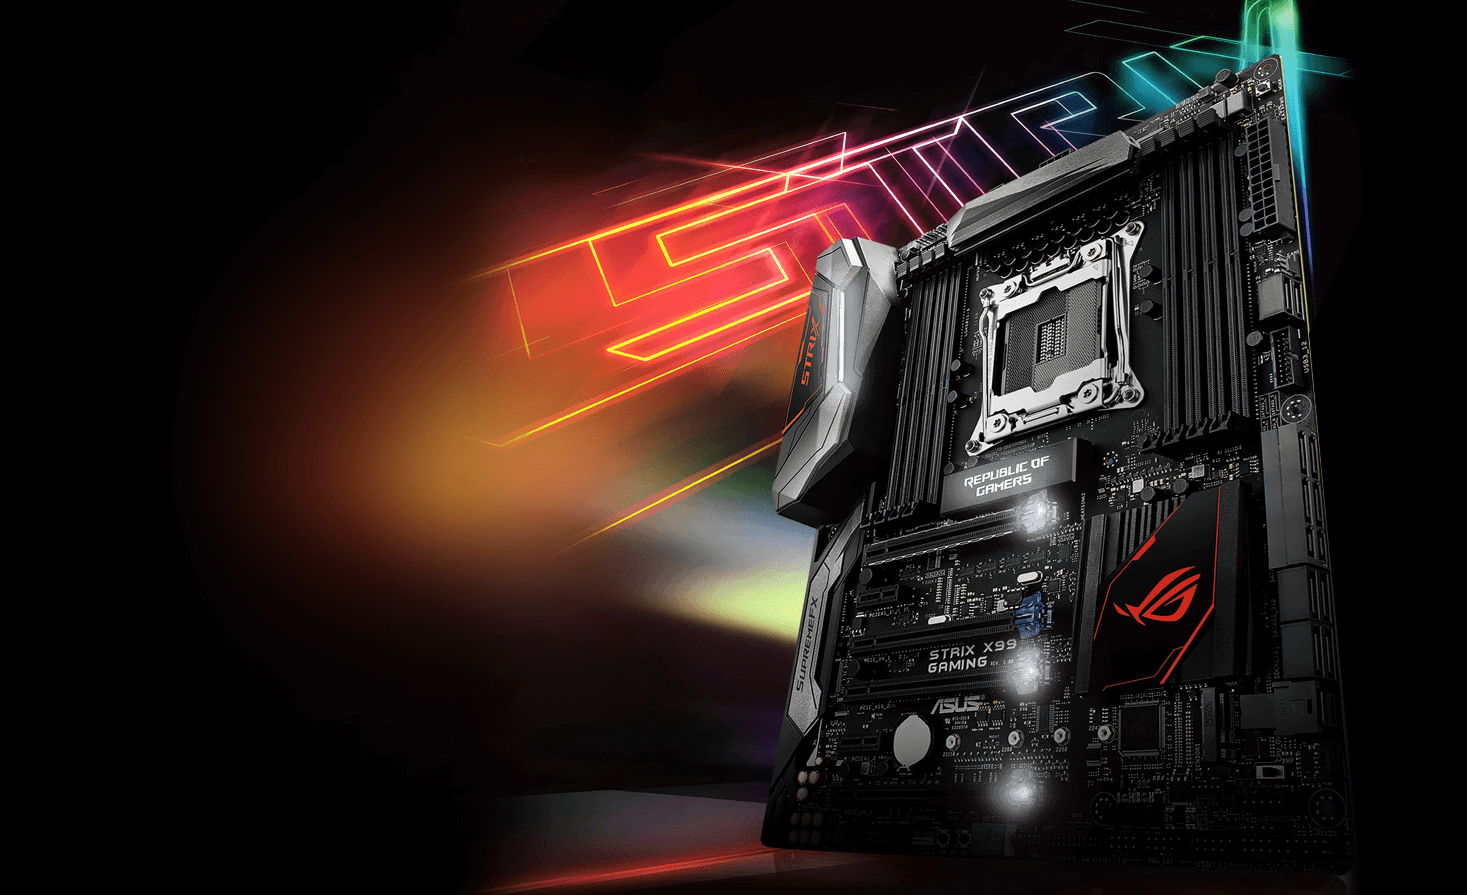 Mainboard ASUS STRIX X99 Gaming